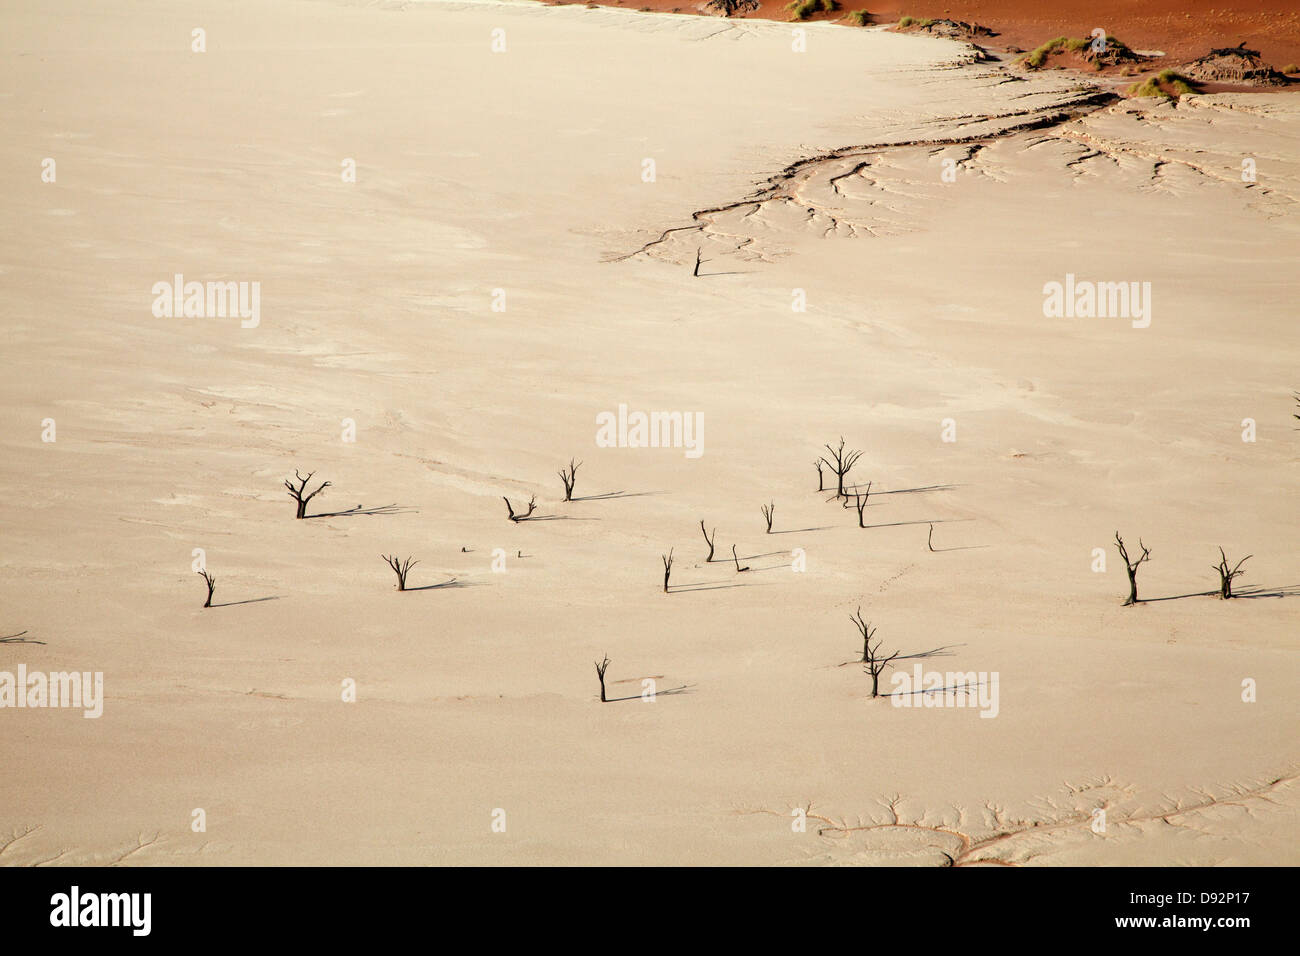 Dead trees (thought to be 900 years old) on Deadvlei, near Sossusvlei, Namib-Naukluft National Park, Namibia, Africa - Stock Image